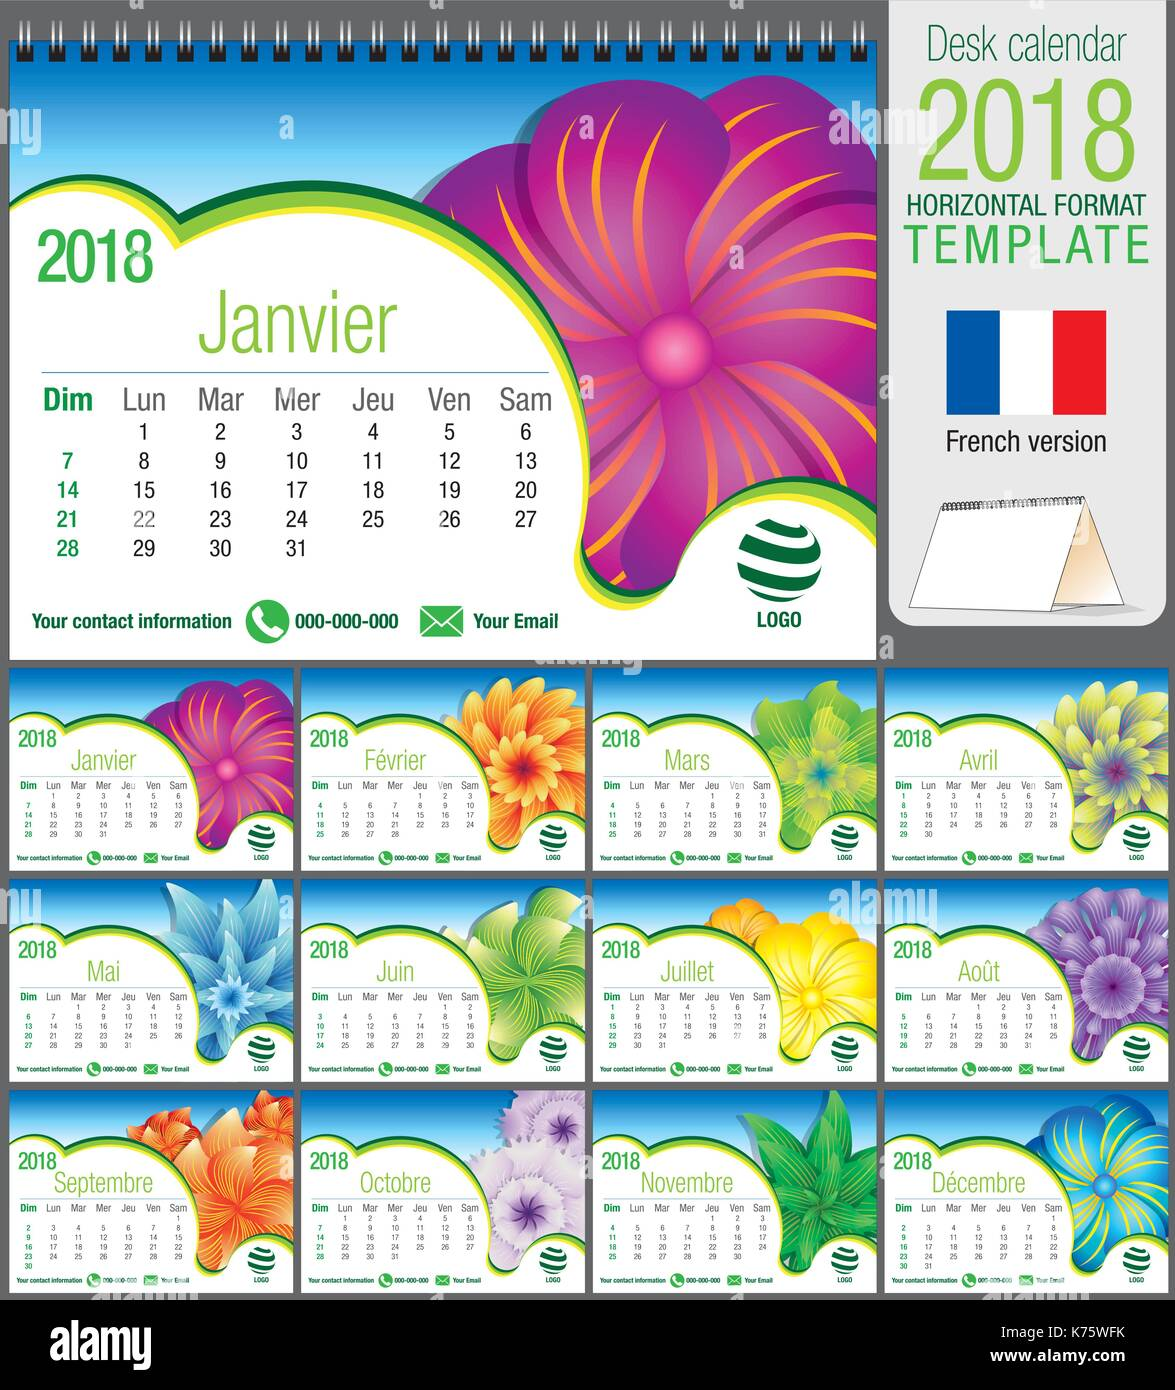 desk triangle calendar 2018 template with abstract floral design size 21 cm x 15 cm format a5 vector image french version